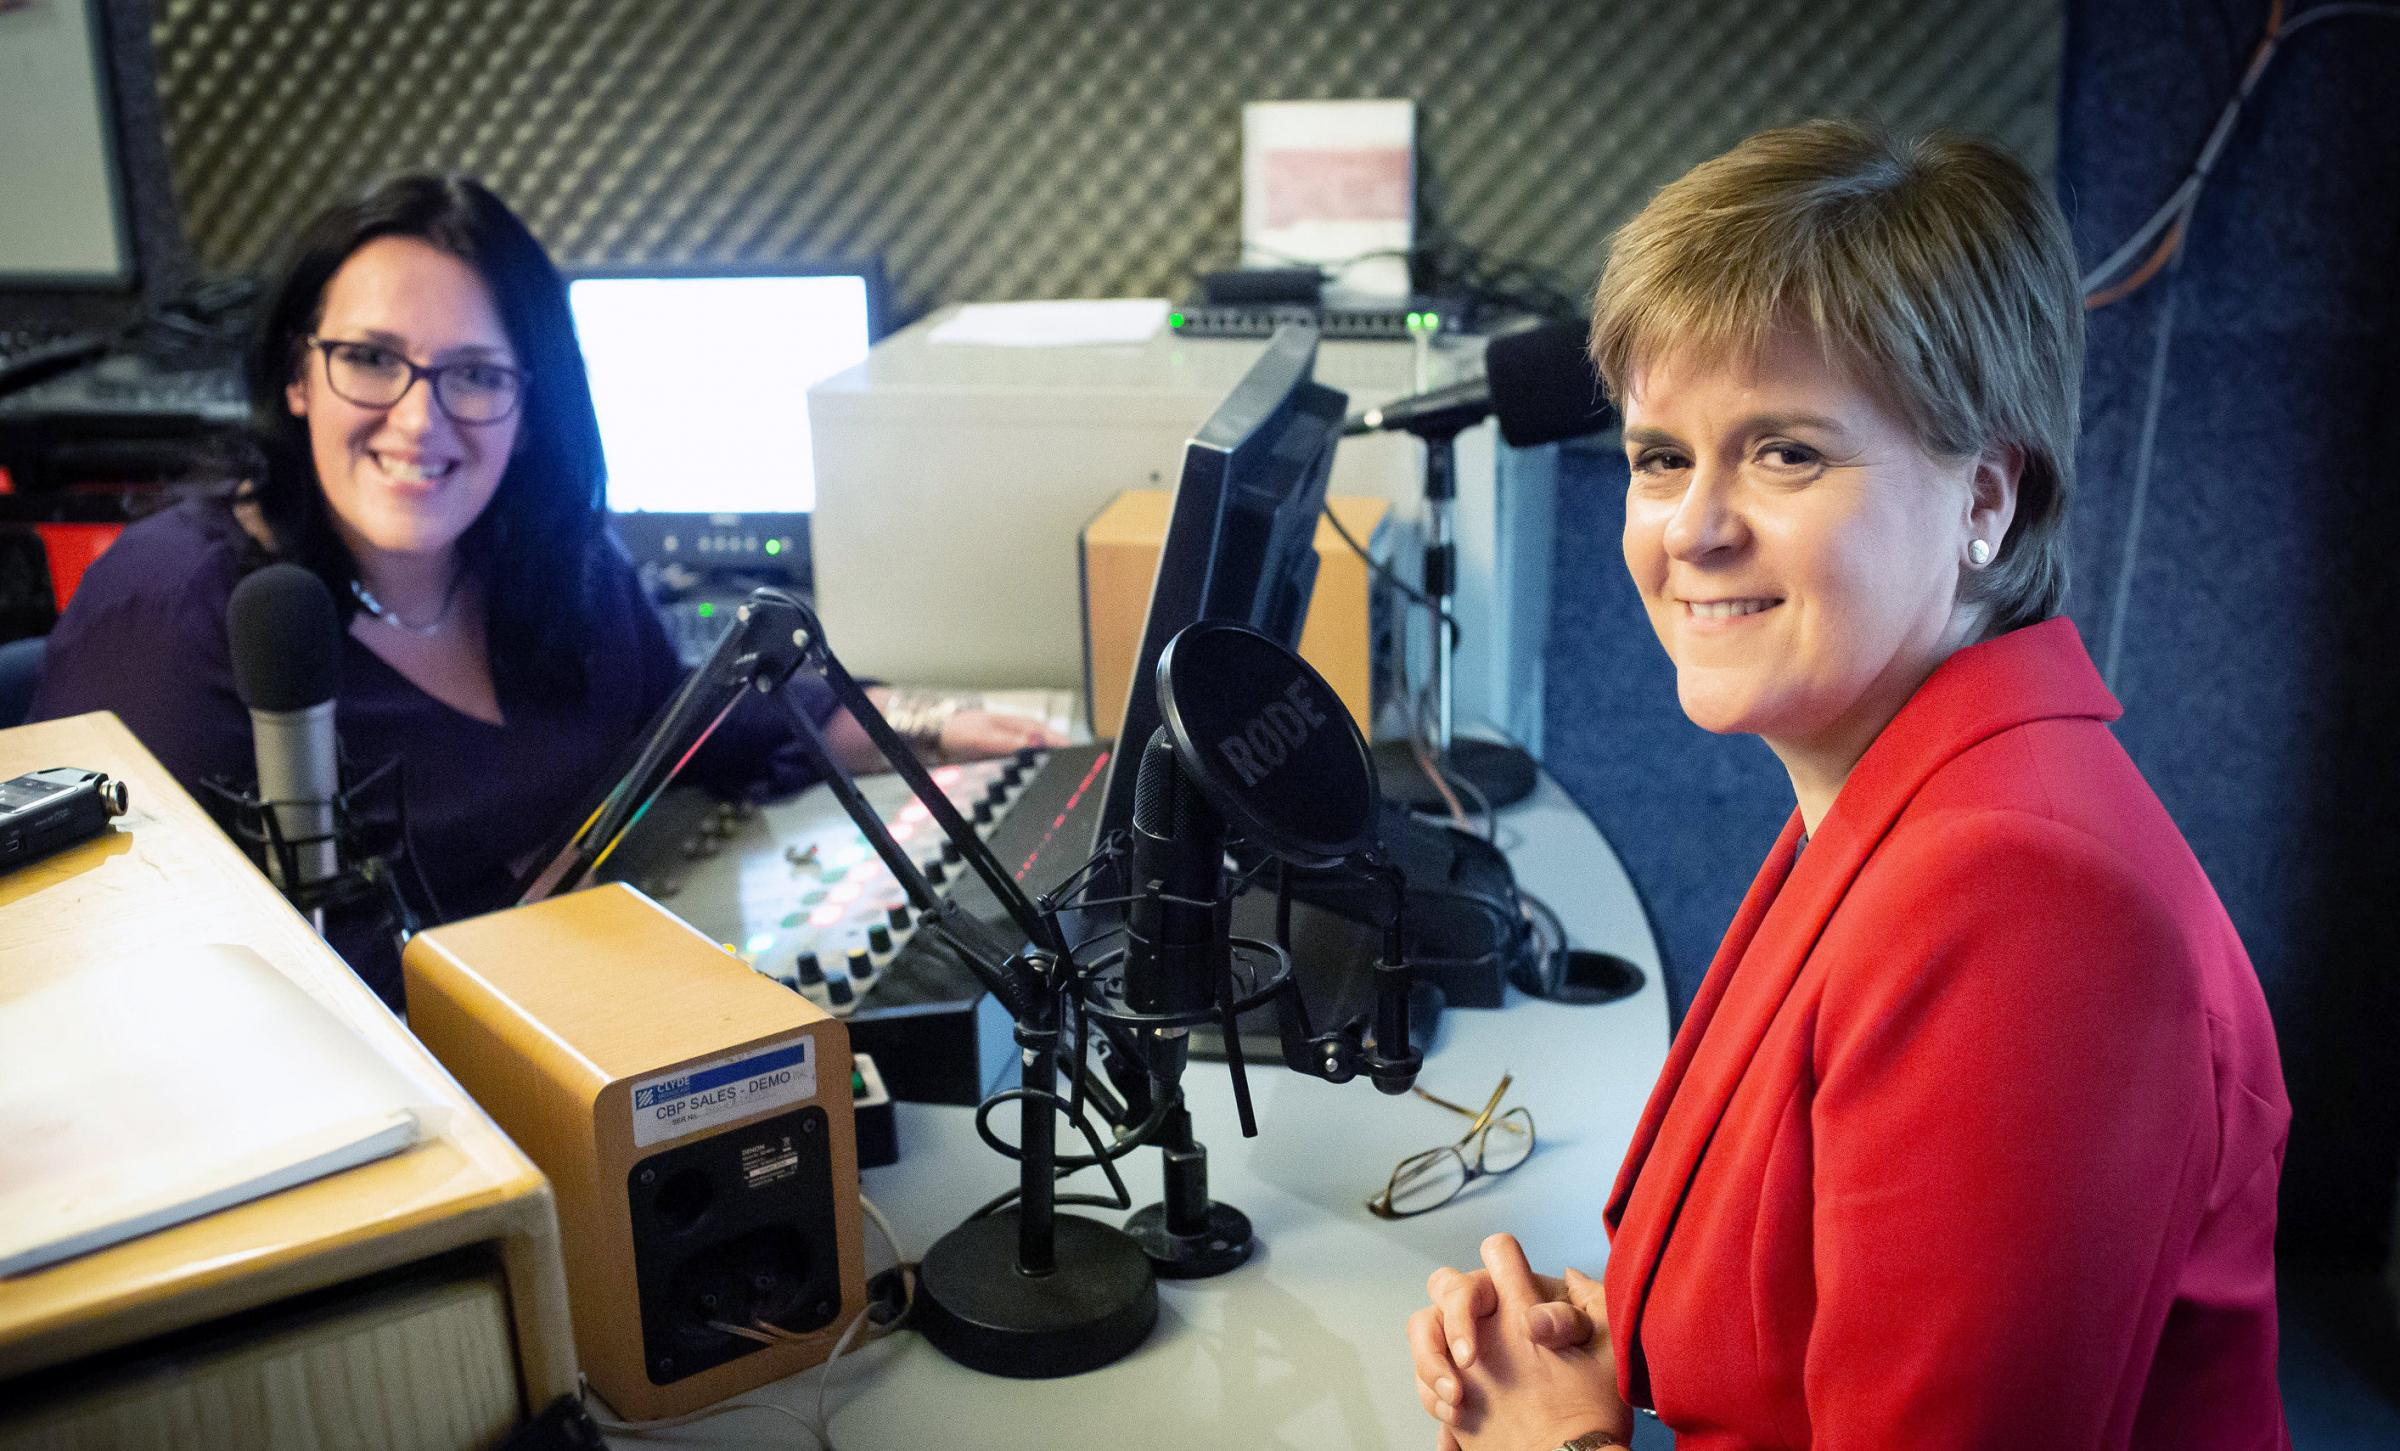 In a revealing interview for Sunny Govan Radio, the First Minister discussed being a woman in the senior political arena